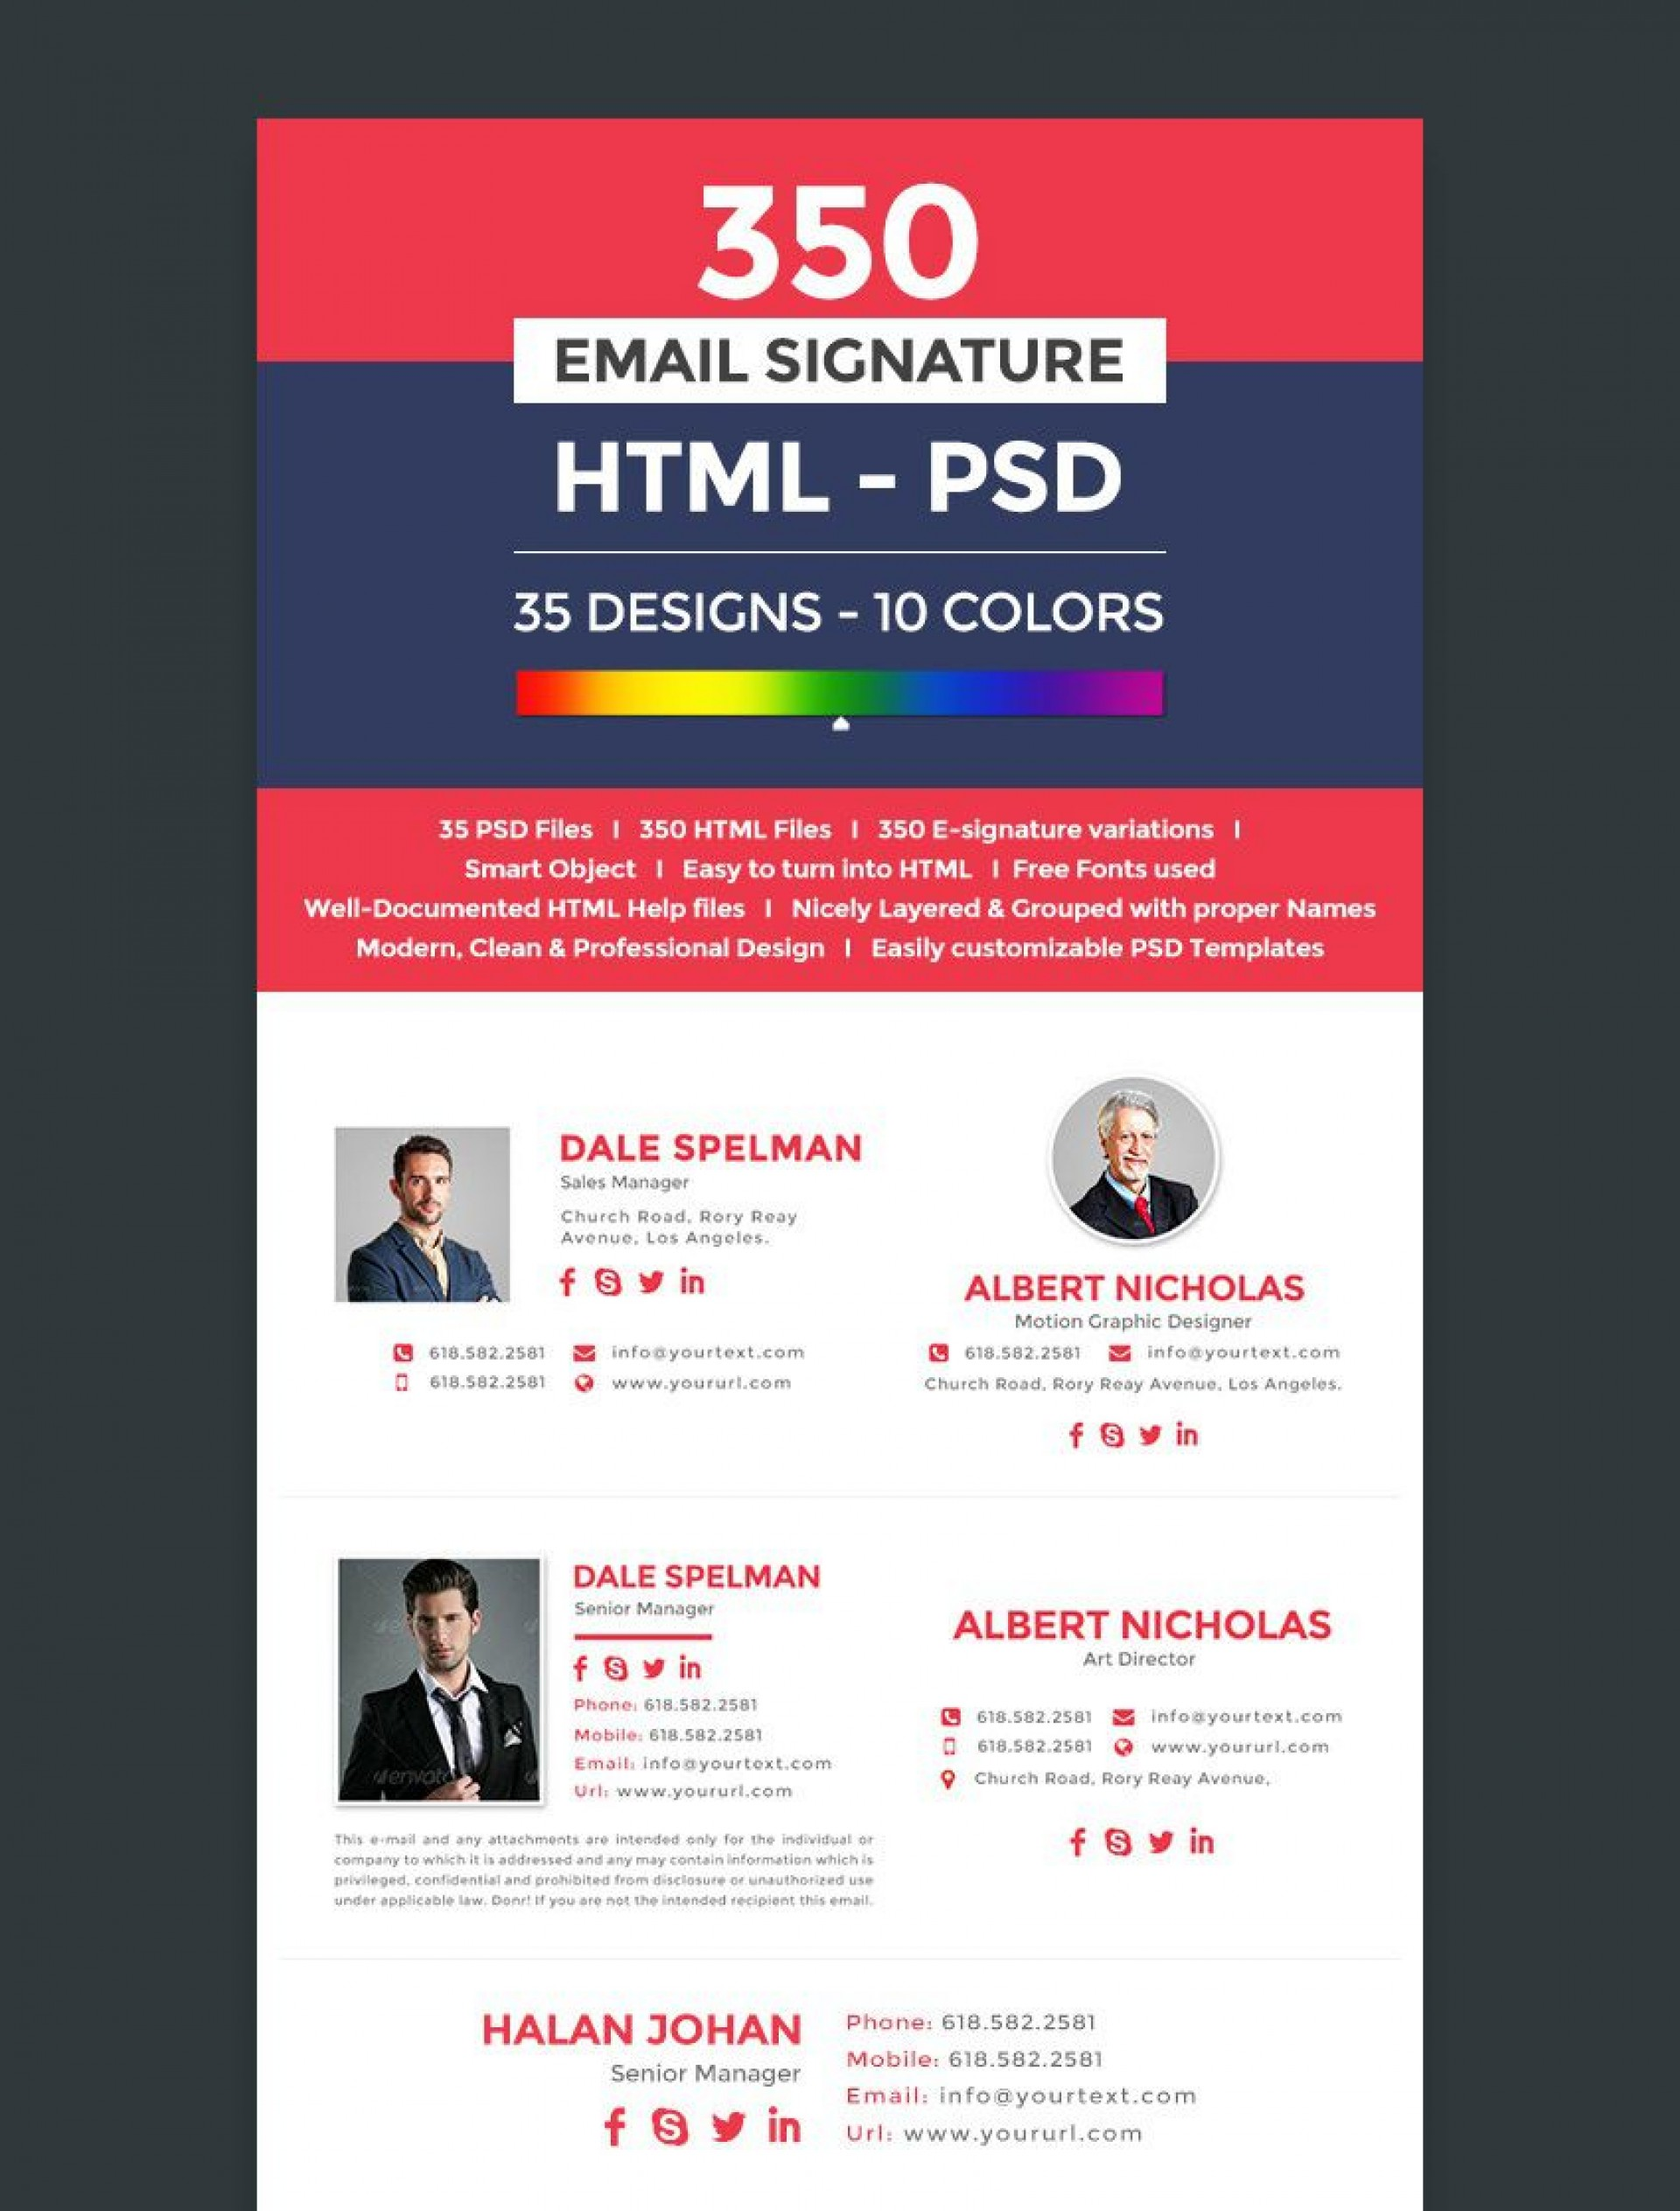 003 Top Professional Email Signature Template High Def  Download Free Html1920